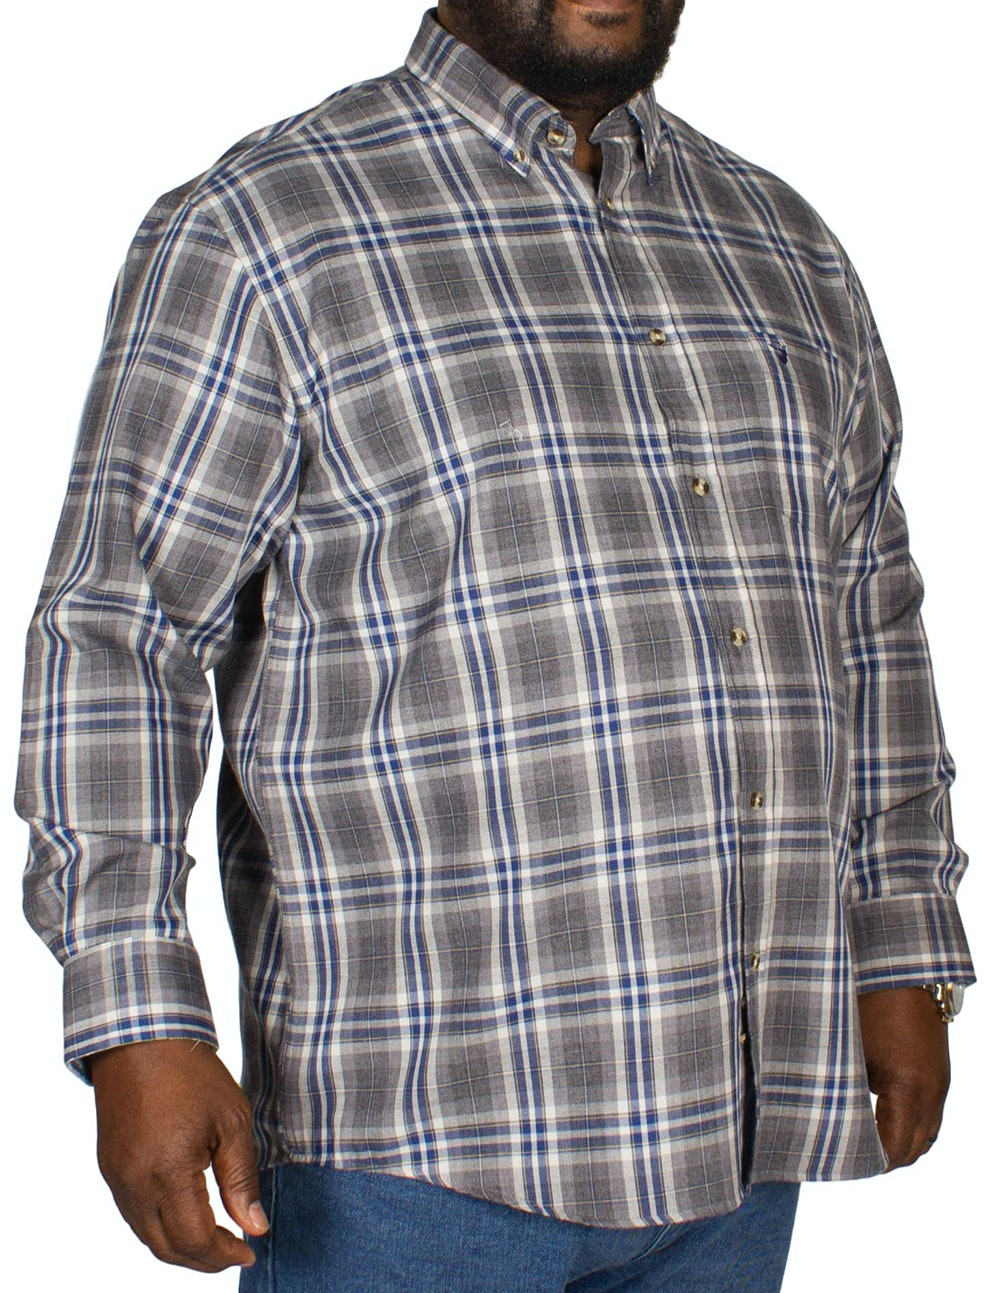 KAM Long Sleeve Flannel Shirt Grey